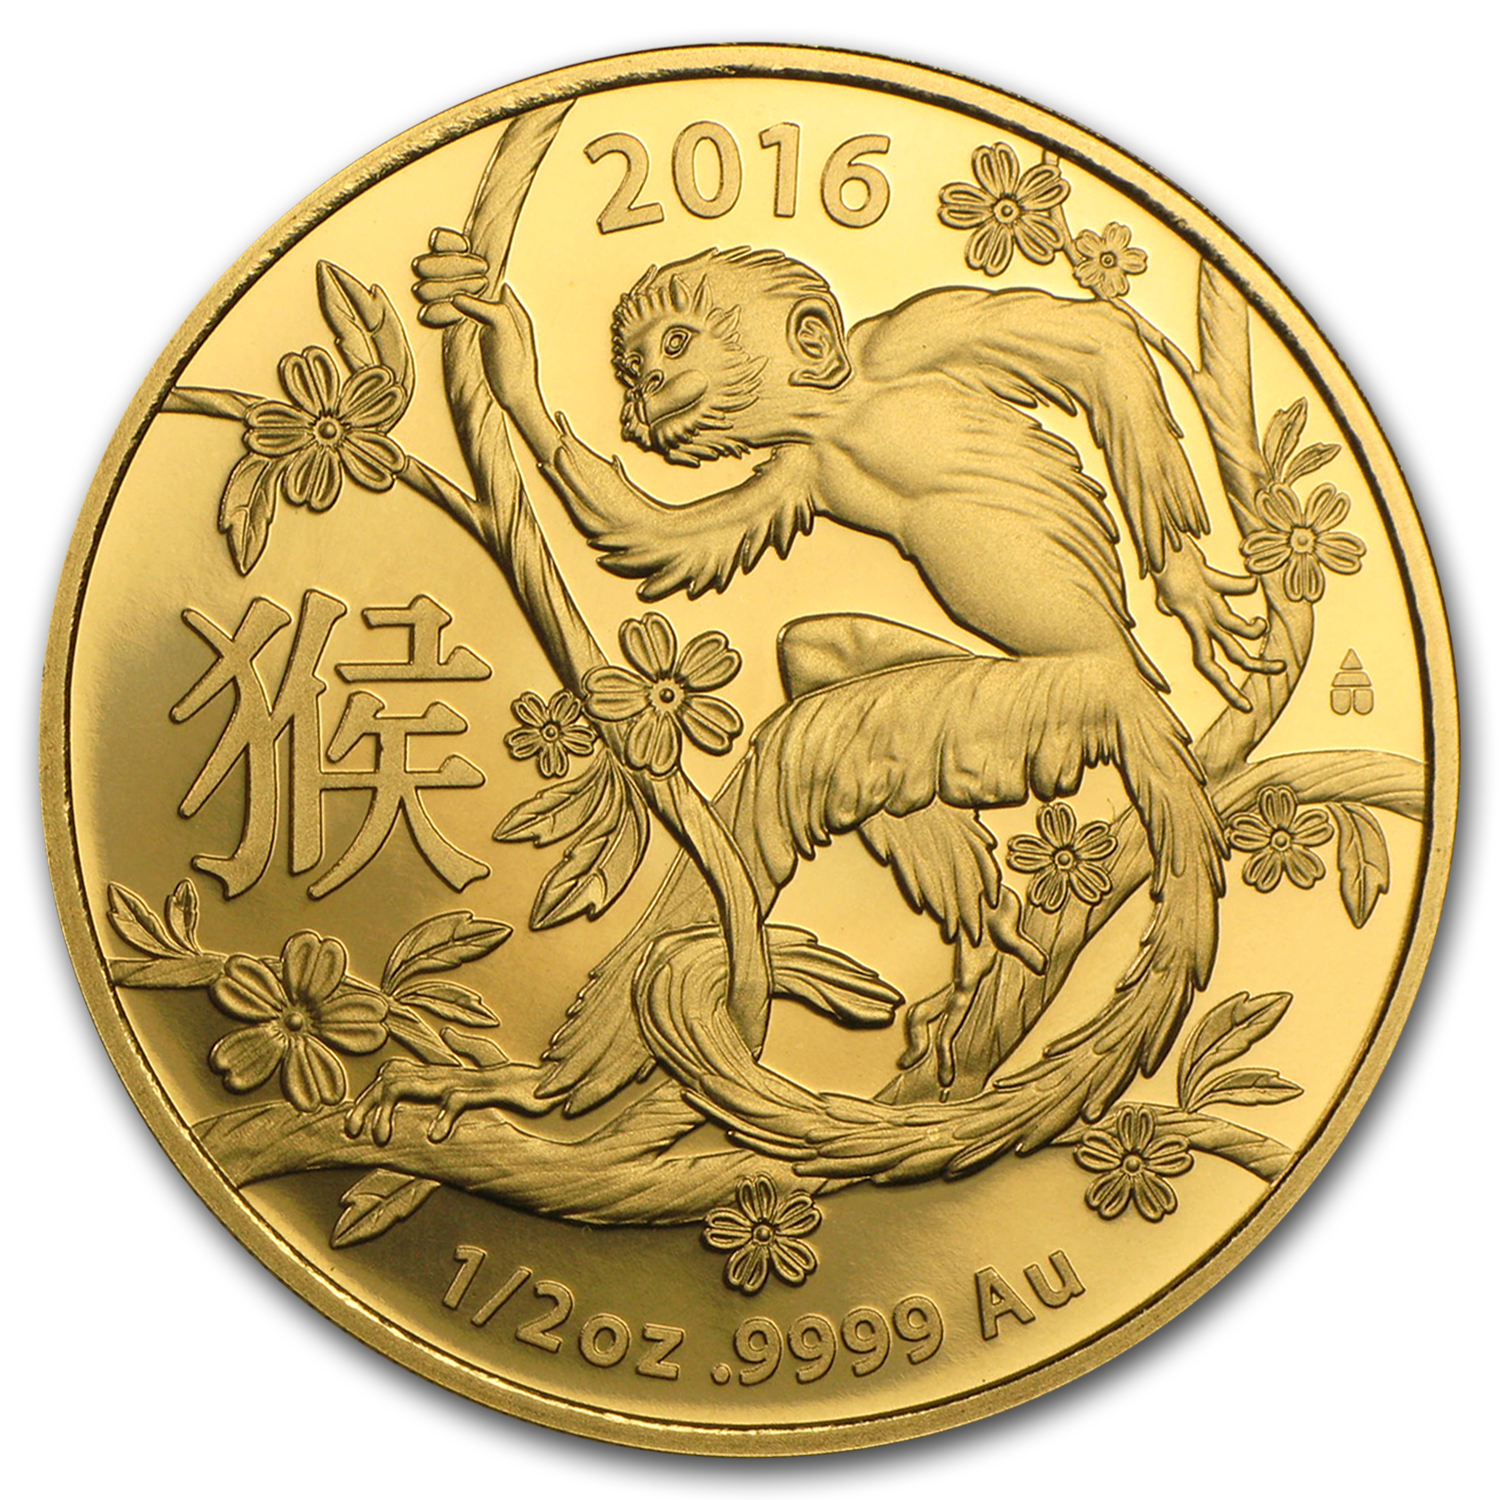 2016 Australia 1/2 oz Gold Lunar Year of the Monkey BU Coin (RAM)